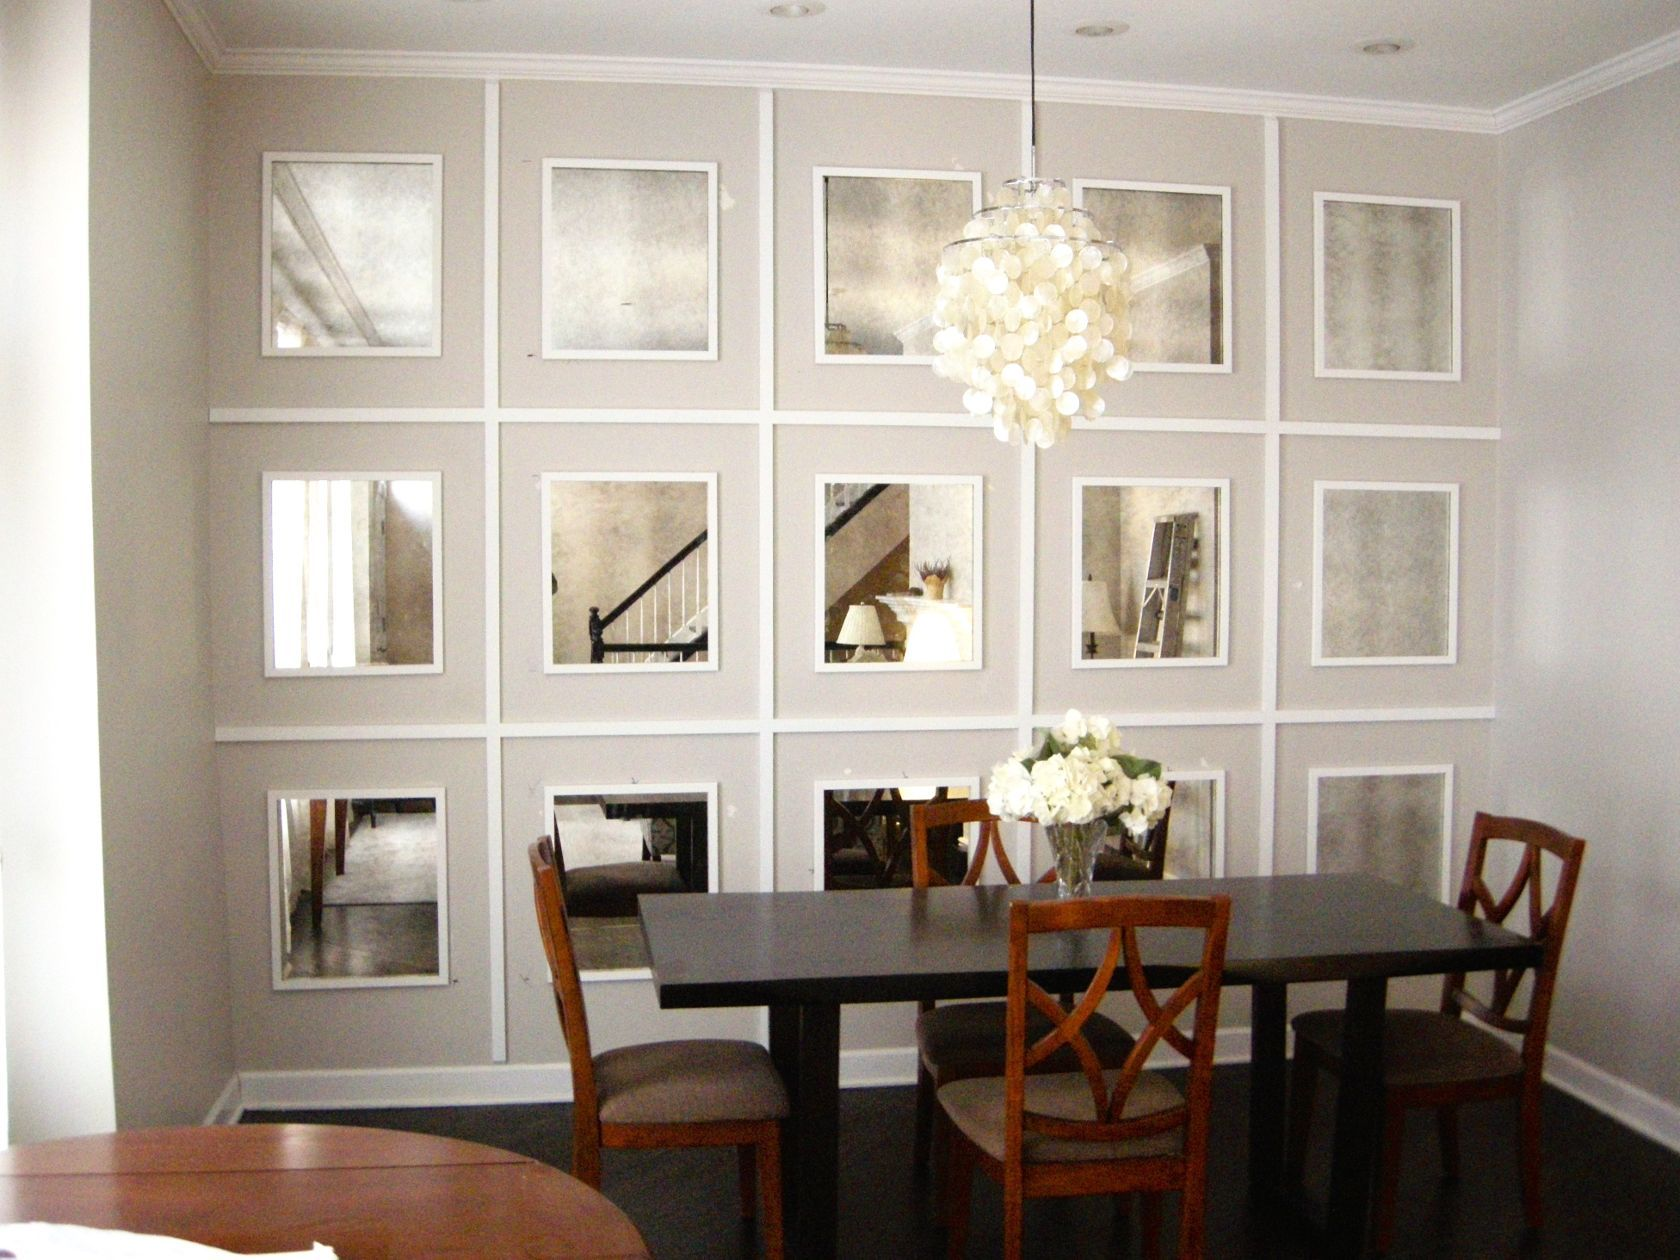 Mirrored wall antiqued mirrors for the home pinterest mirrored wall antiqued mirrors amipublicfo Choice Image